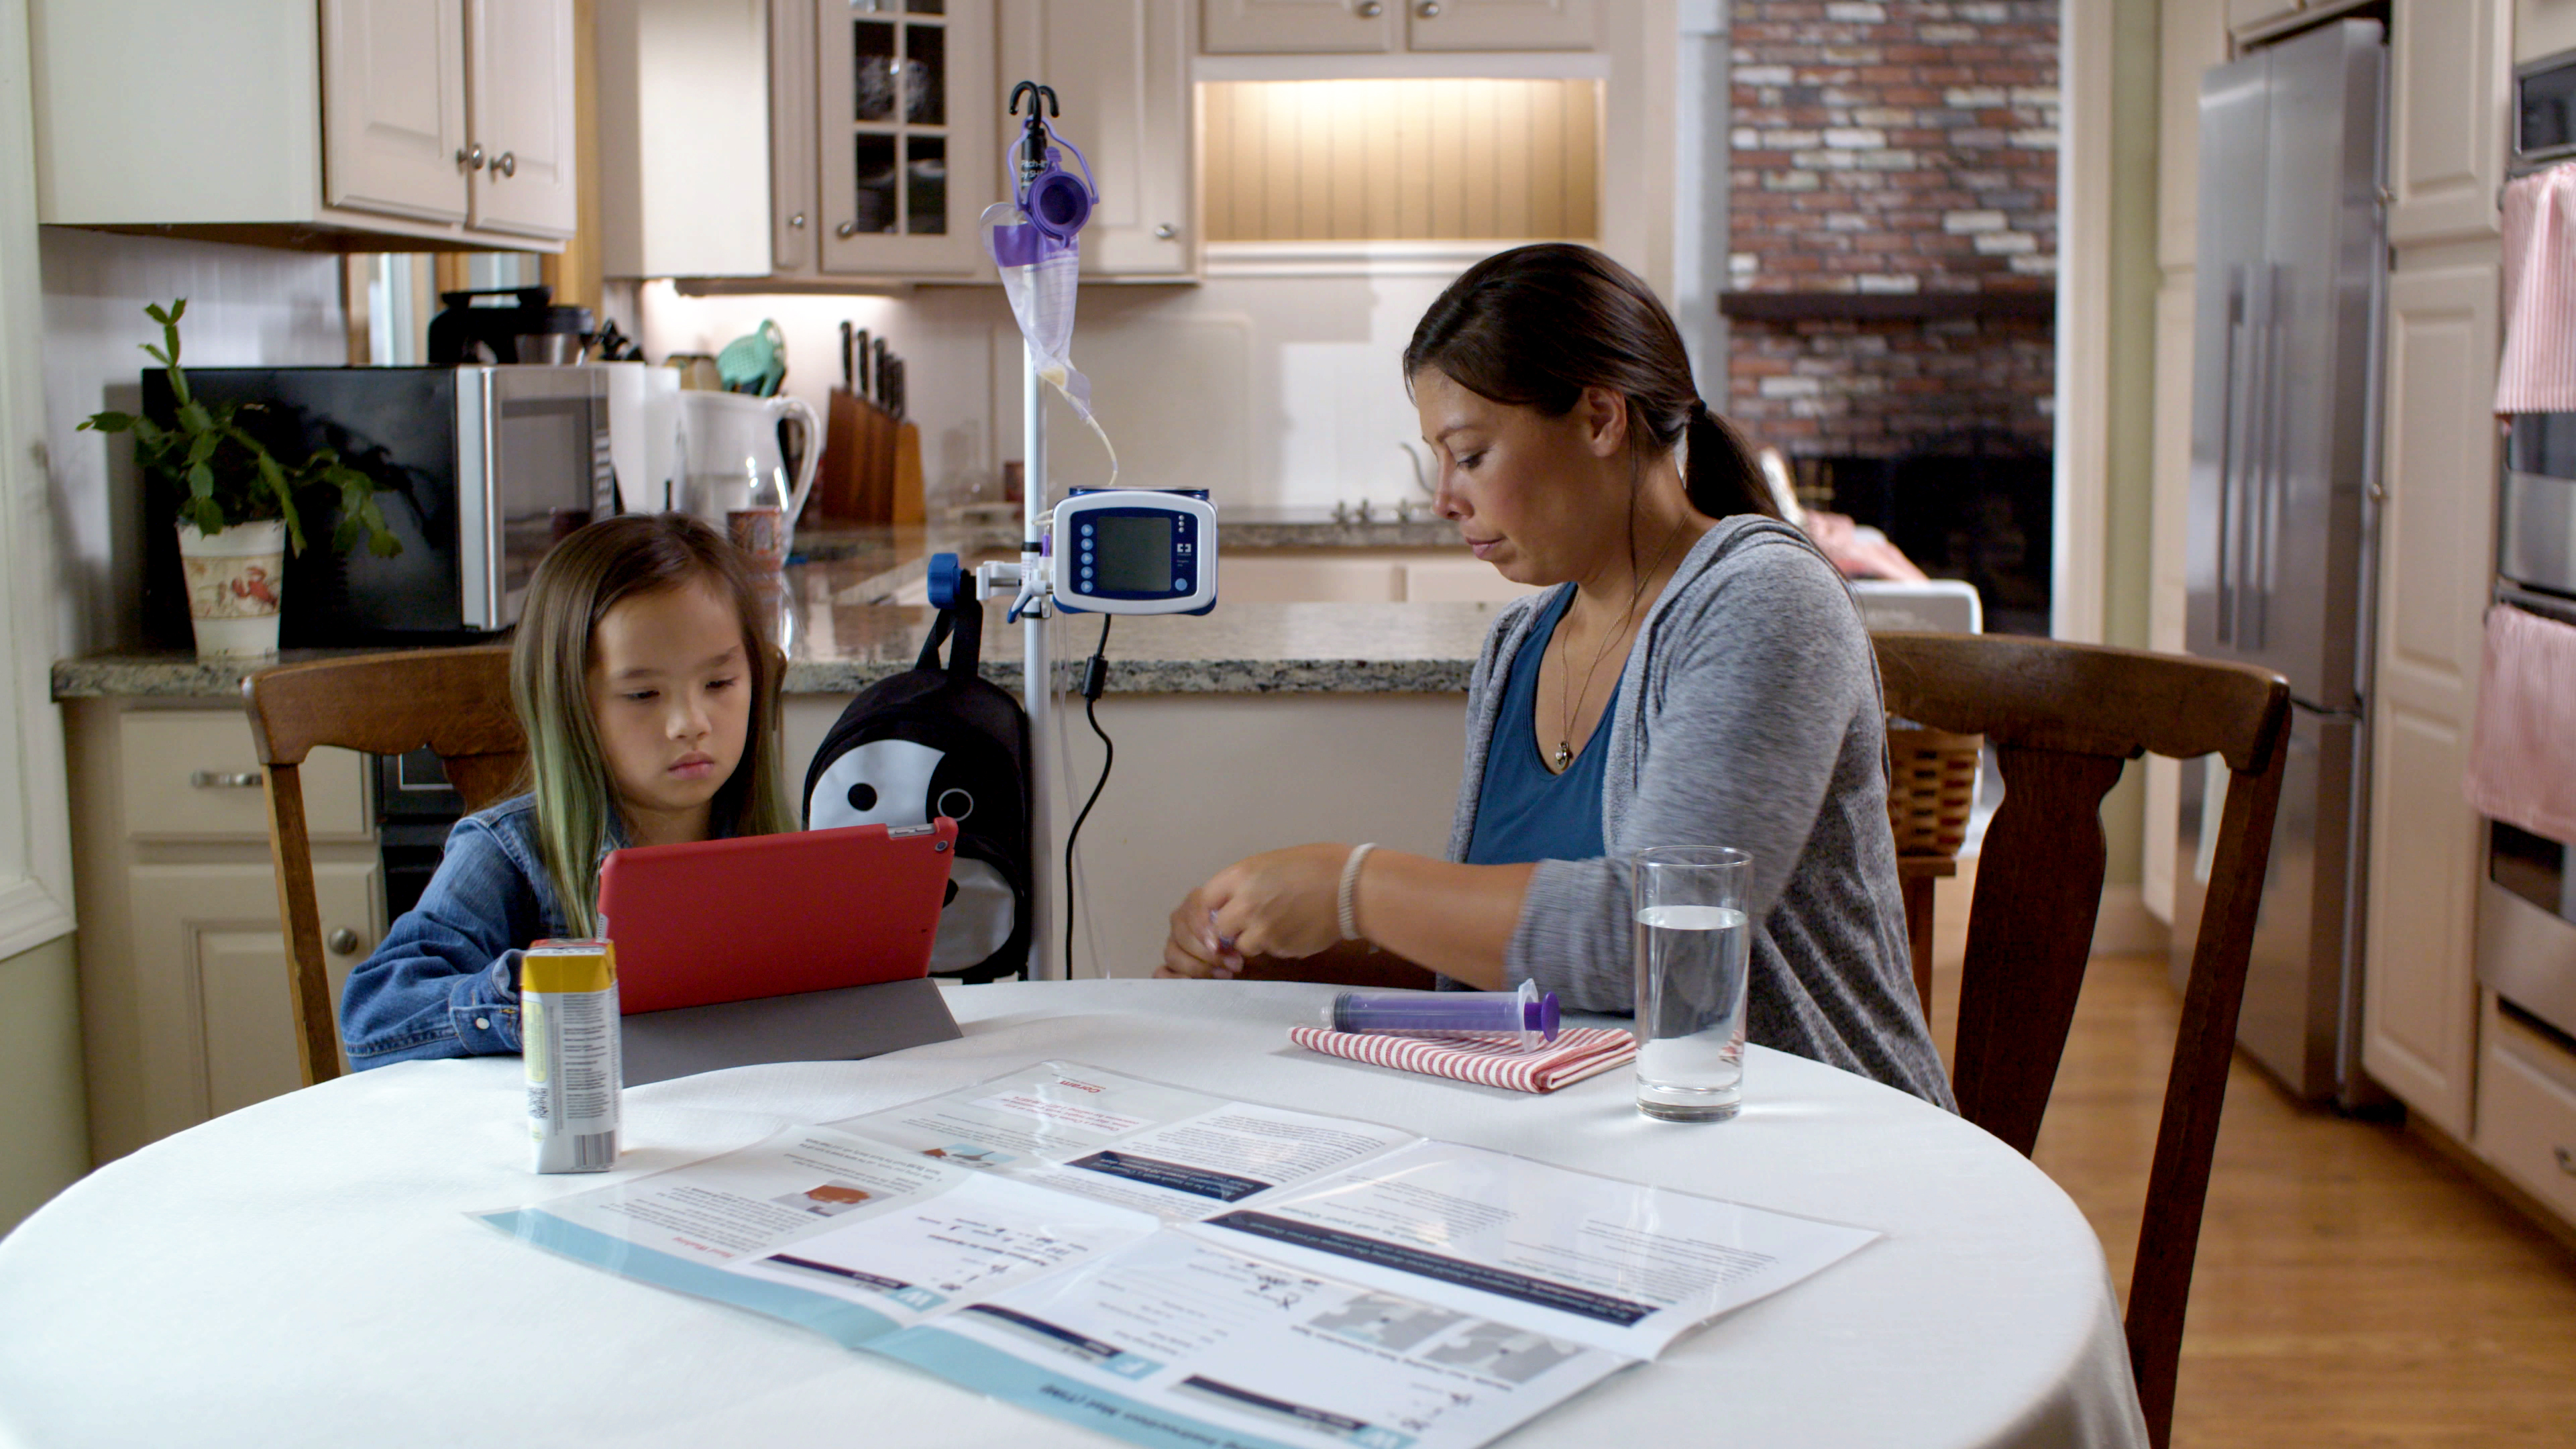 mother and daughter at kitchen table while daughter watches iPad while getting therapy